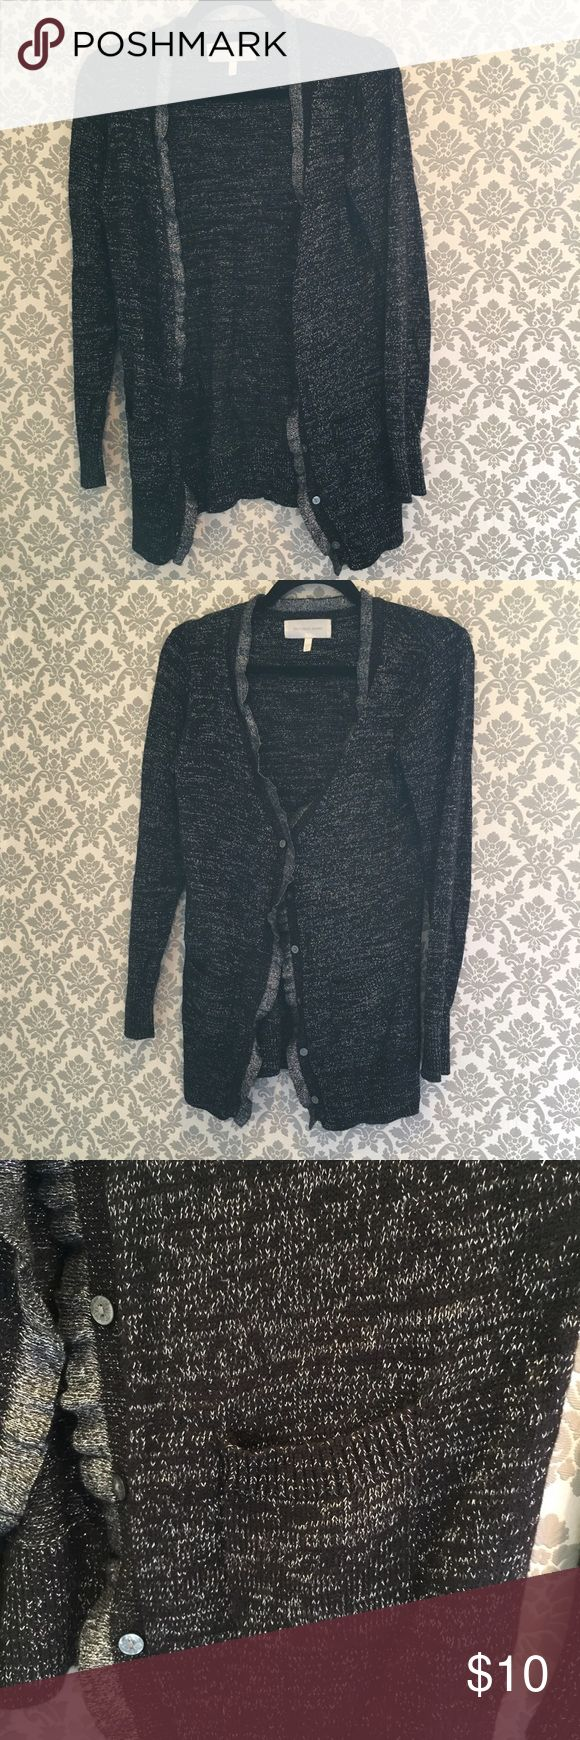 Best 25+ Silver cardigans ideas on Pinterest | Fall clothes 2014 ...